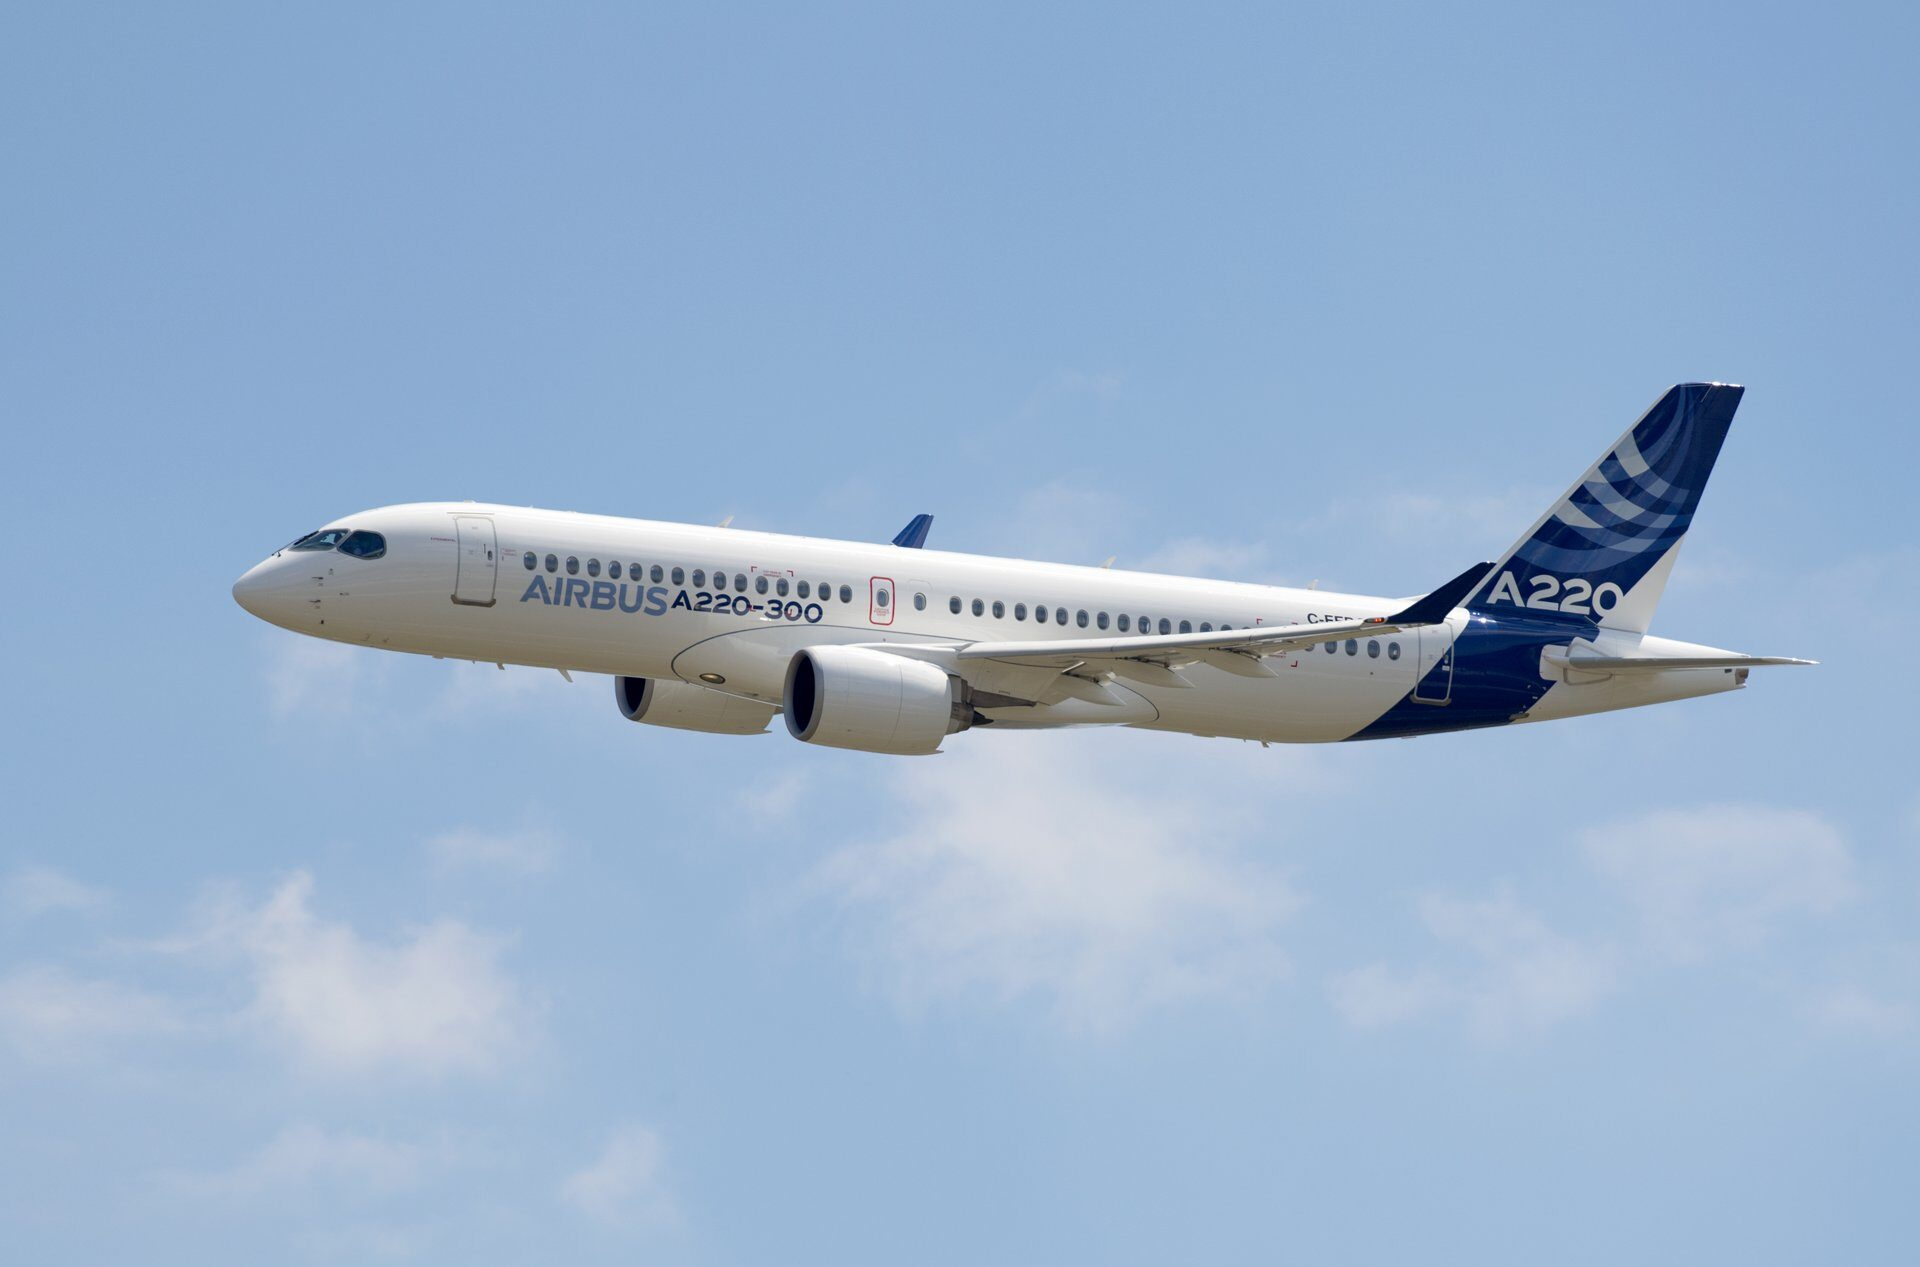 There Is Interest For The Airbus A220 In China